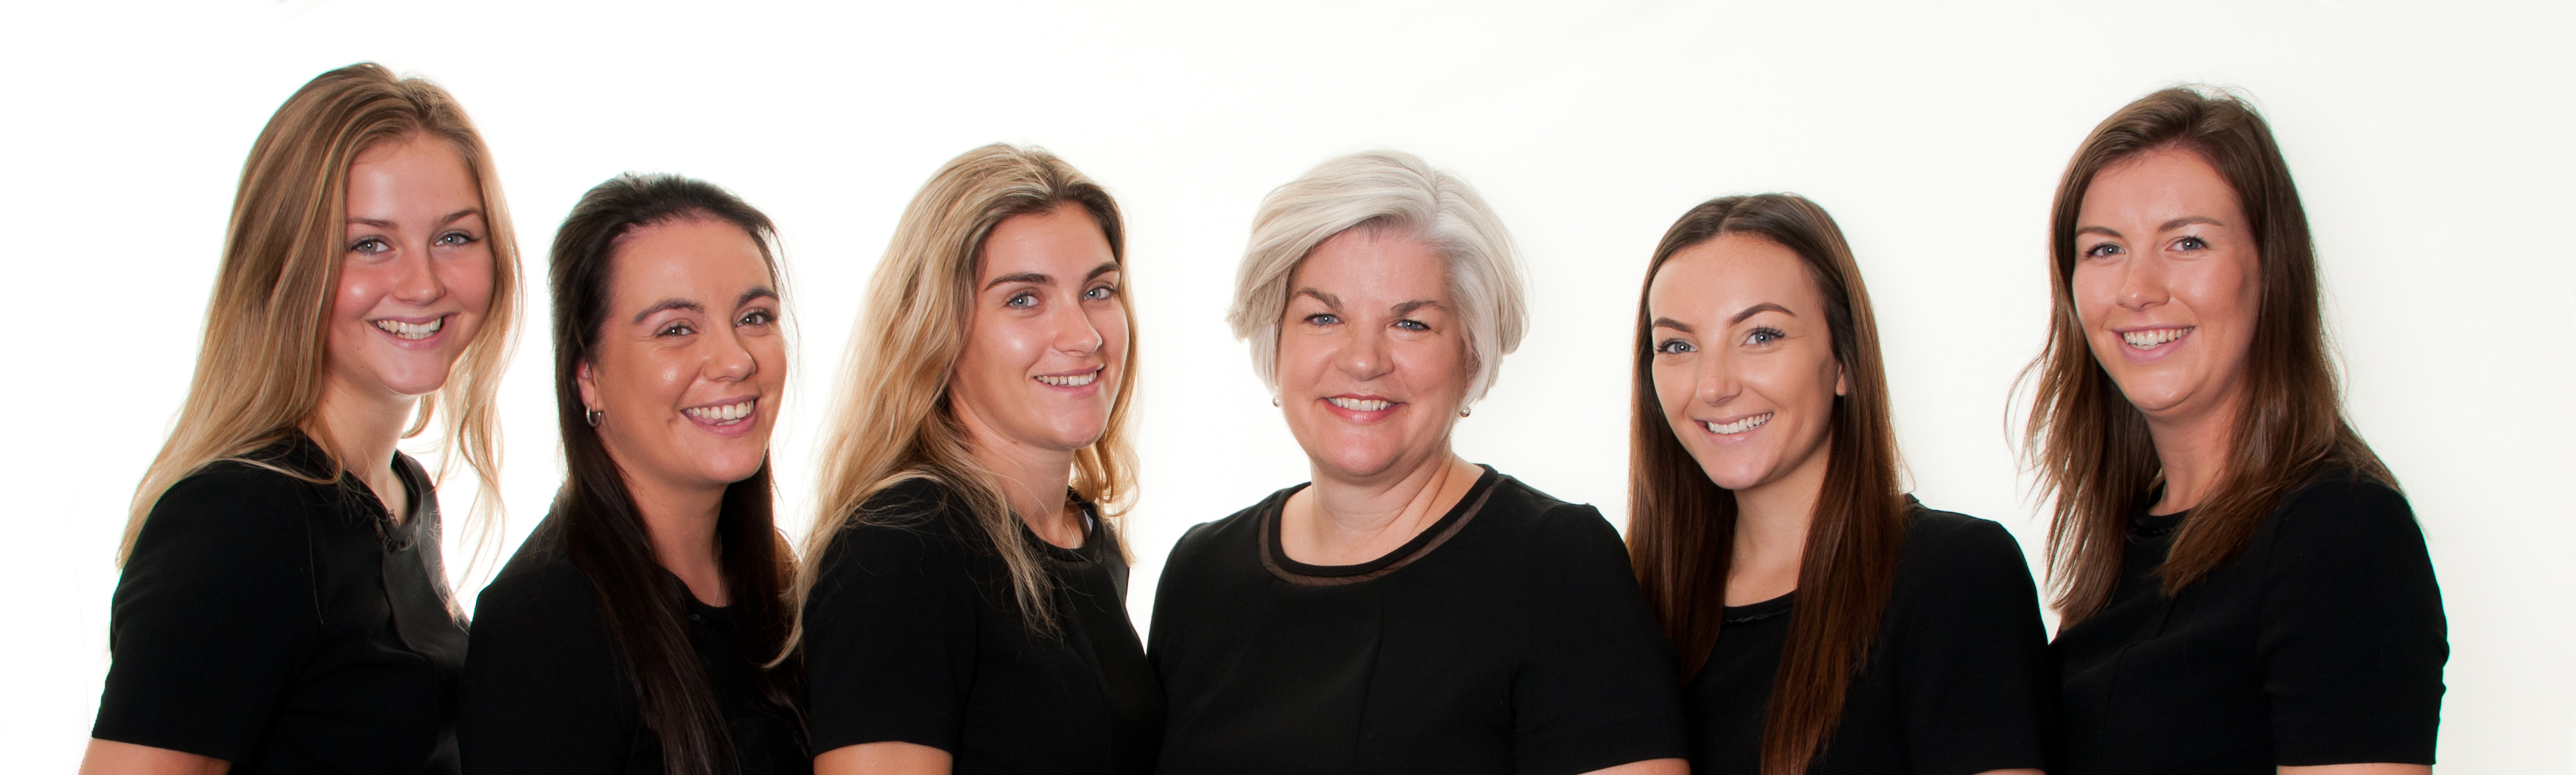 The Image Events Team